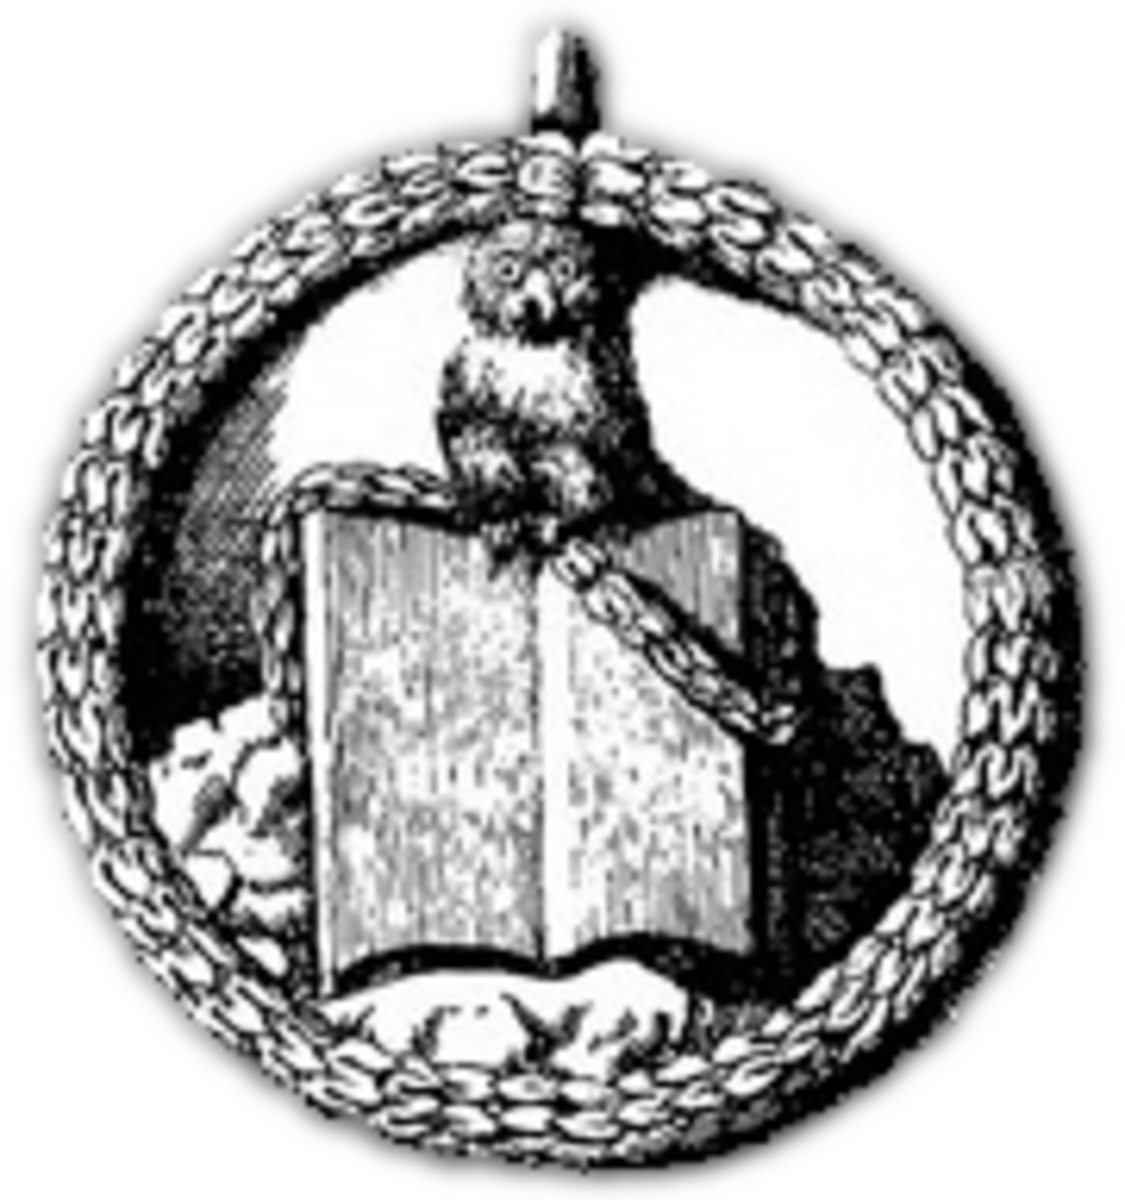 This is the original insignia of the Bavarian Illuminati. It pictures the owl of Minerva - symbolising wisdom - on top of an opened book. This version of the owl comes from an early pamphlet, printed around 1776.